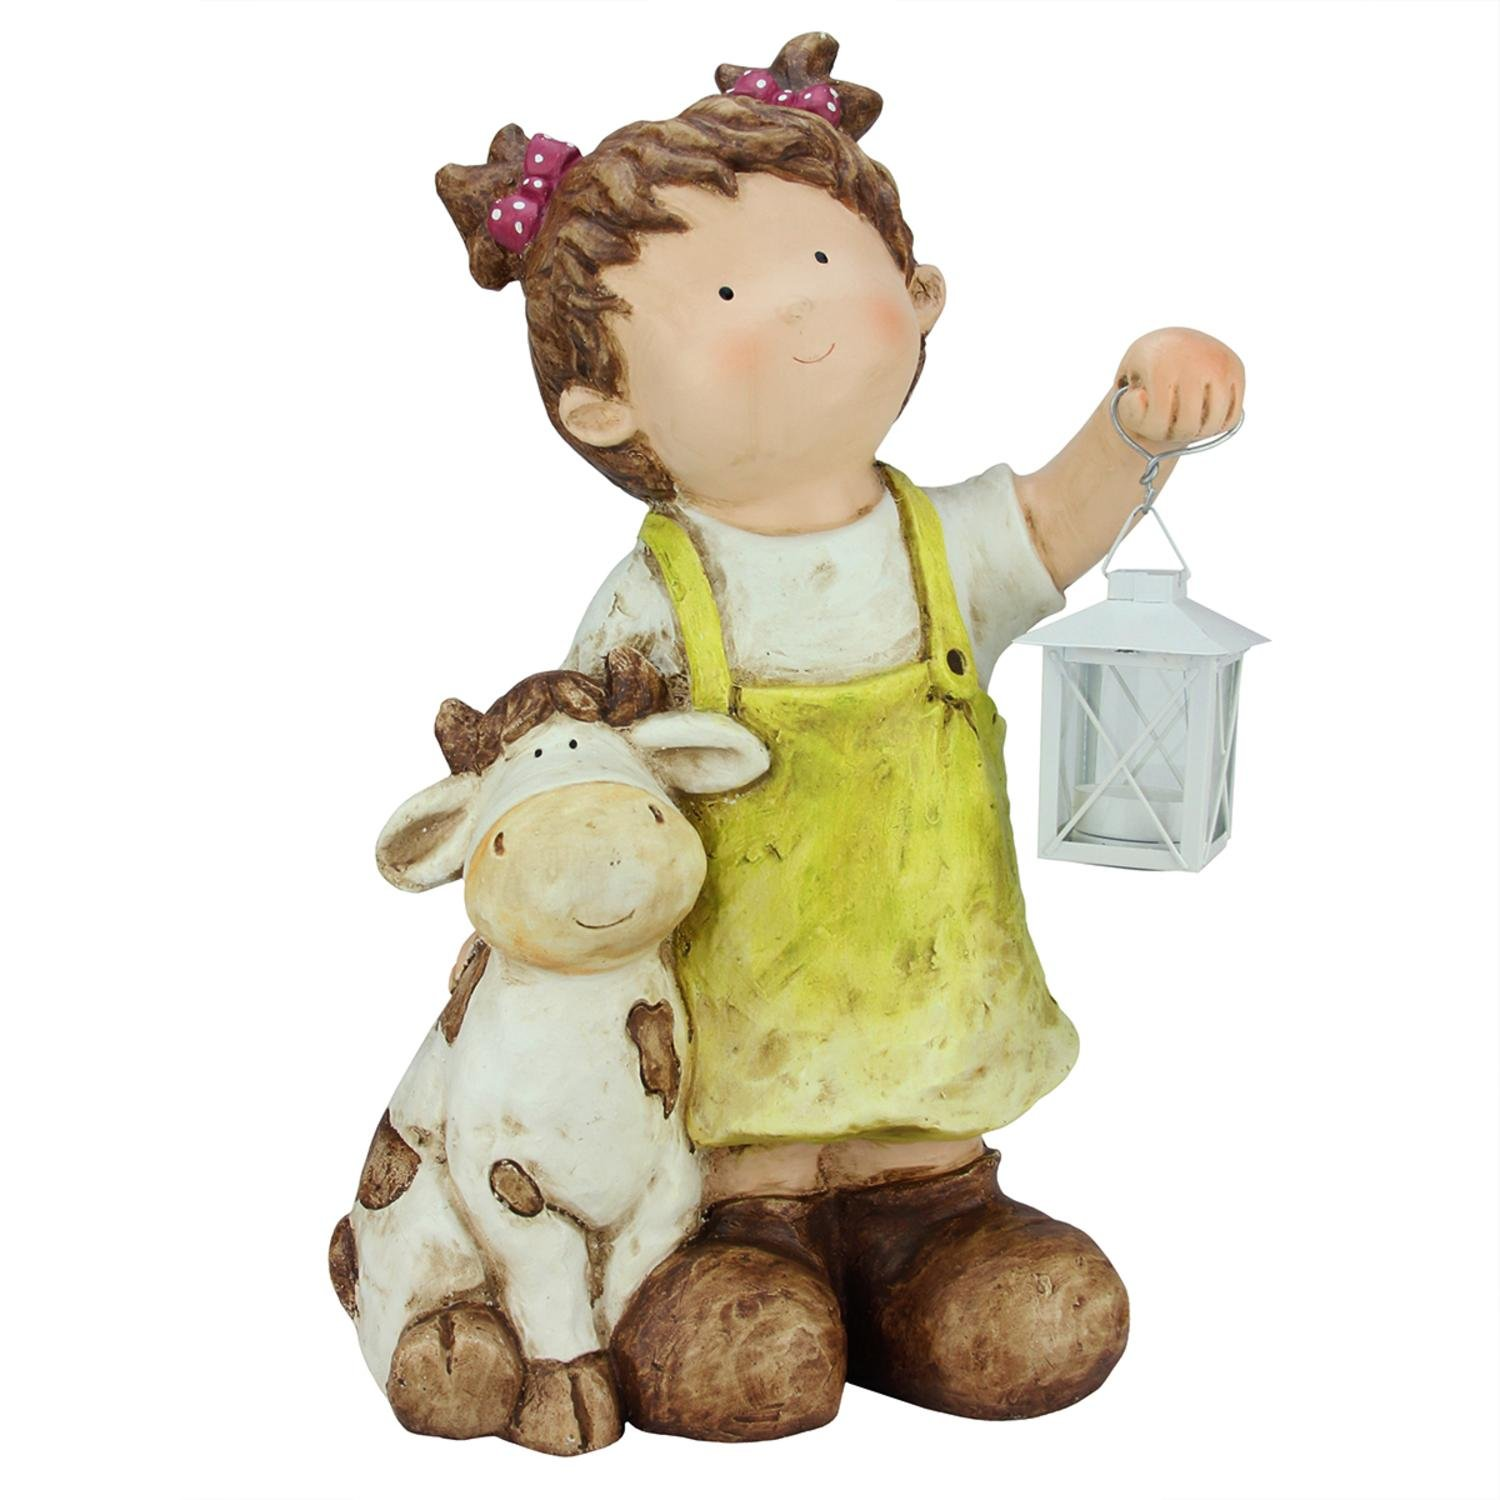 Northlight QQ76174 Young Girl Gnome with Cow & Lantern Outdoor Garden Patio Figure Statuary and Fountains, 17.5'', Green